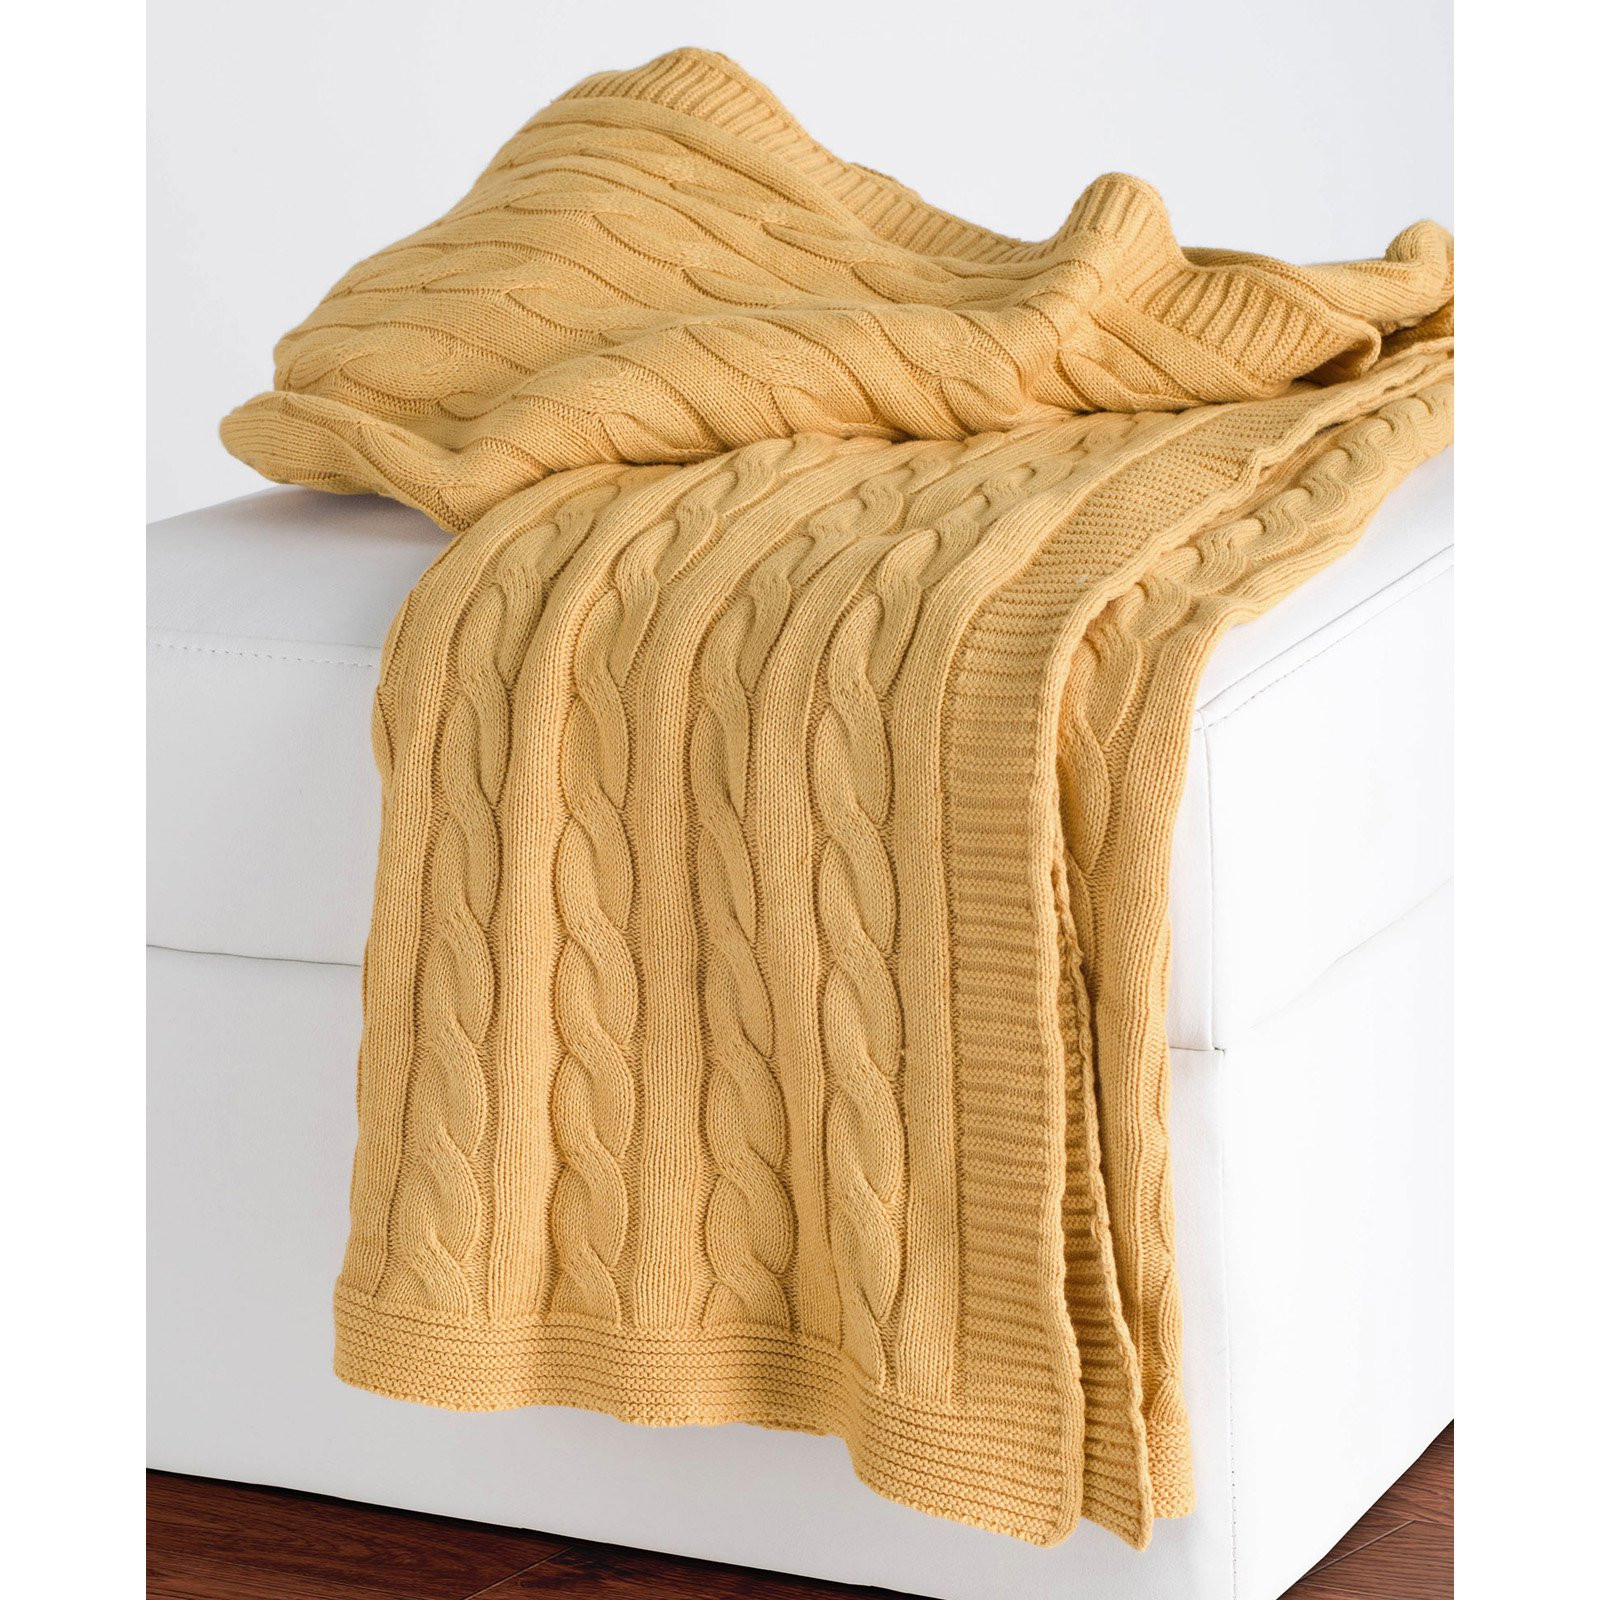 Beautiful Cable Knit Sweater Throw Blanket La S Sweater Patterns Cable Knit Sweater Blanket Of Incredible 50 Photos Cable Knit Sweater Blanket